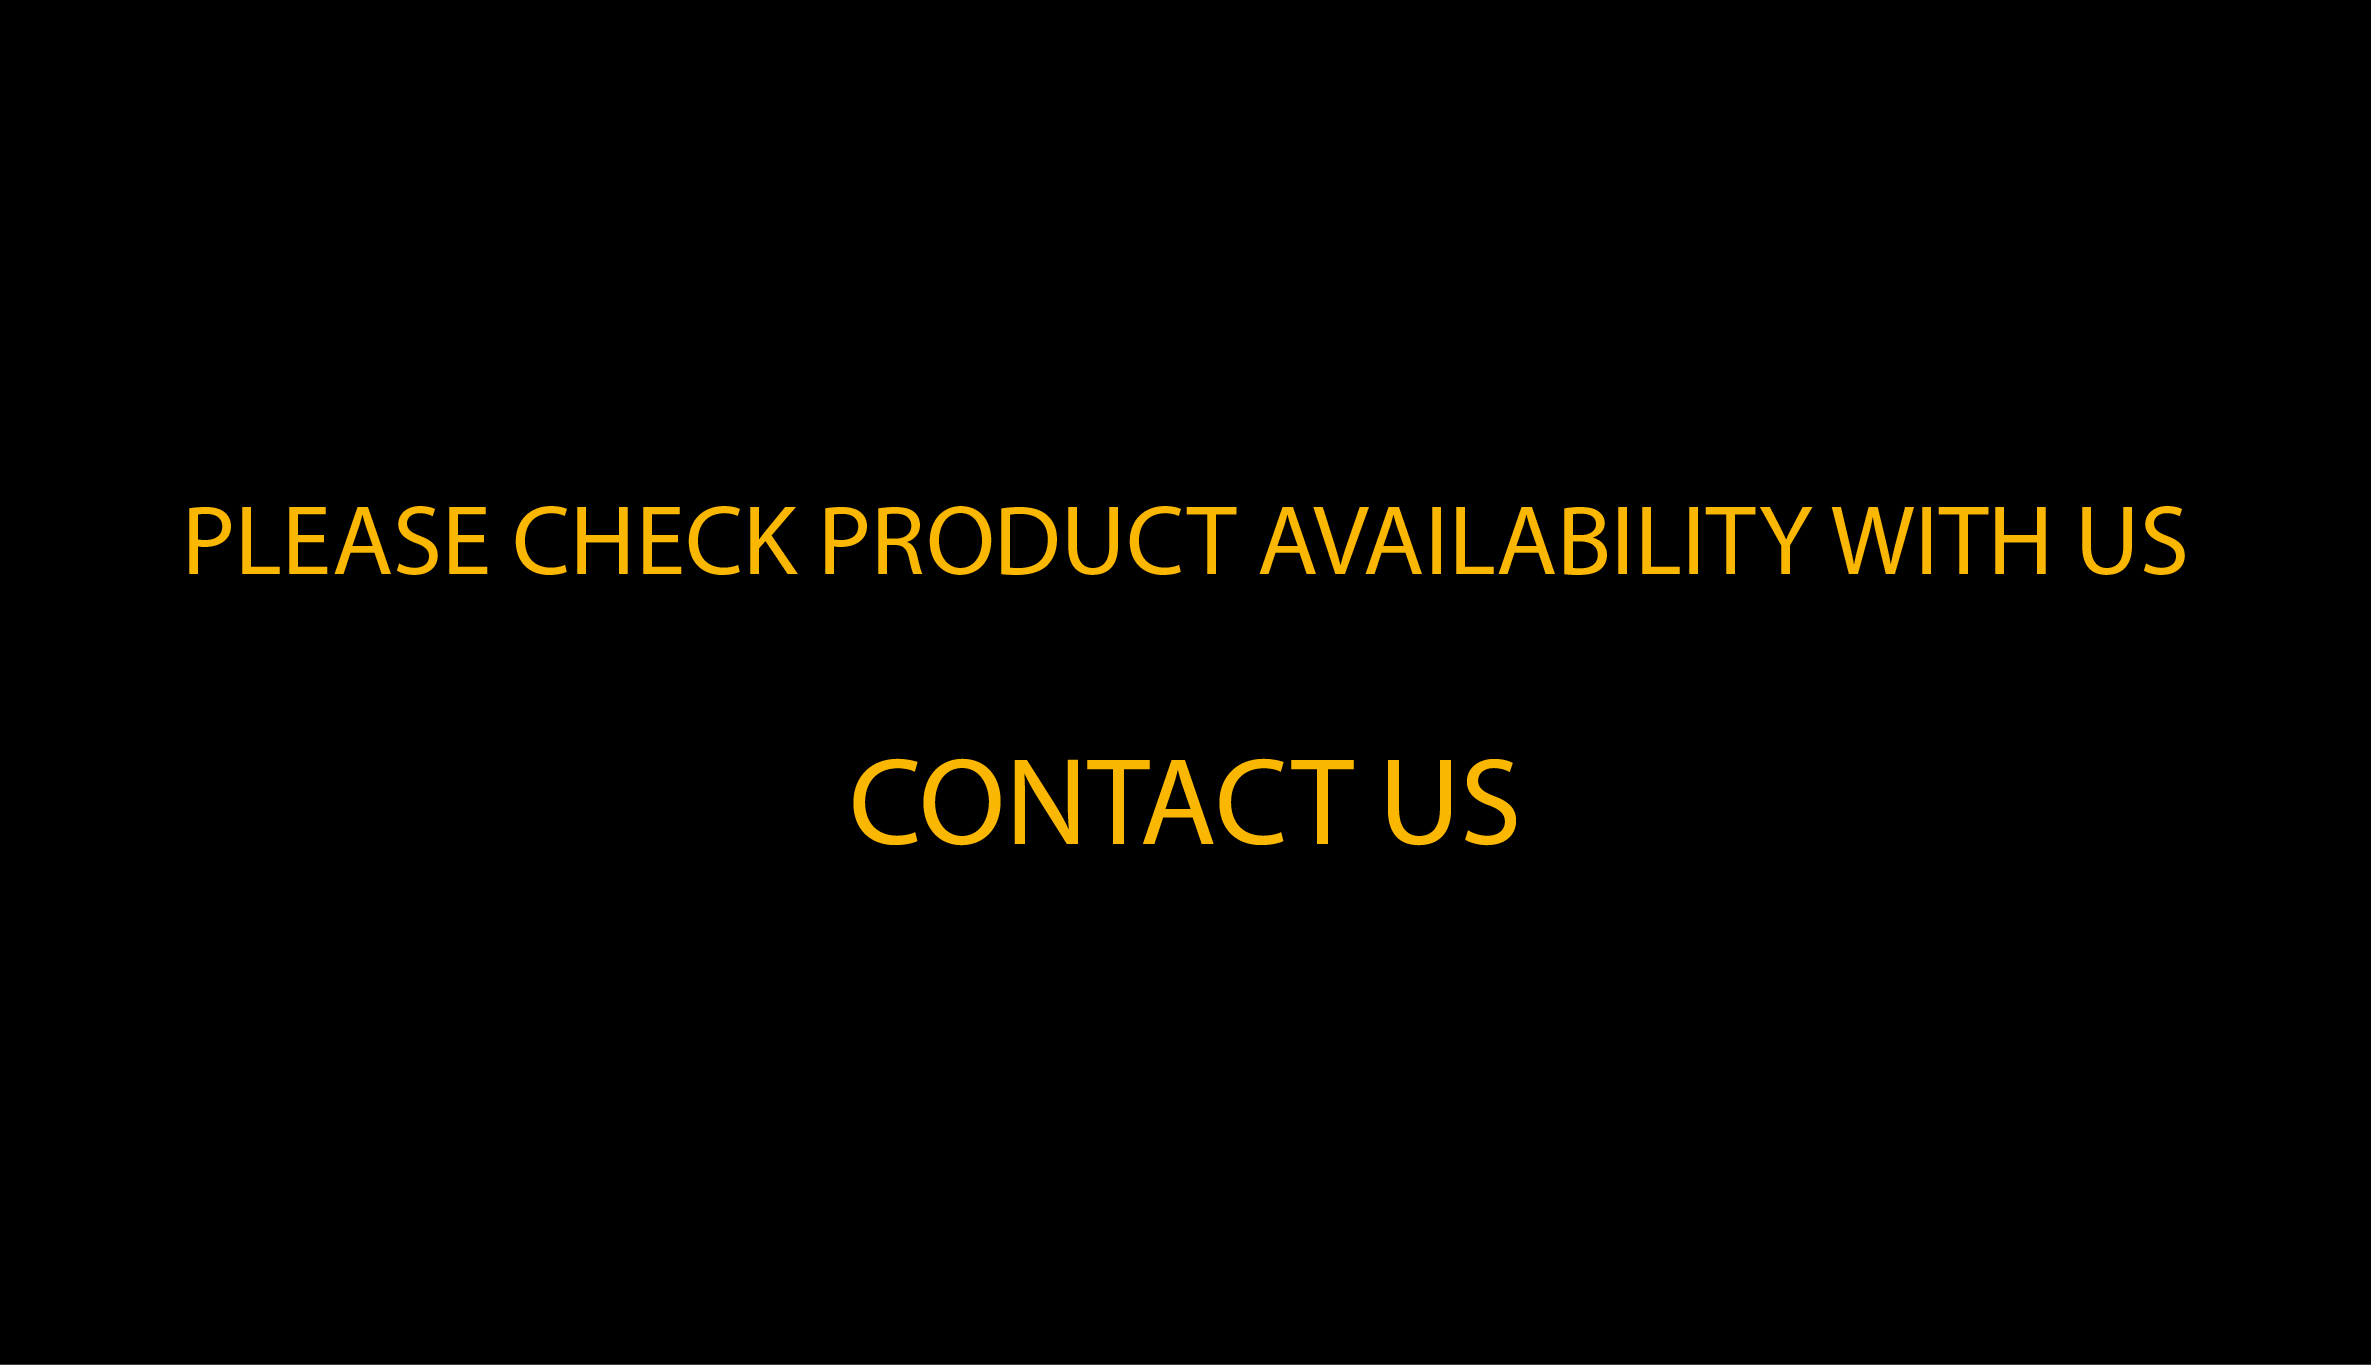 Check Product Availability